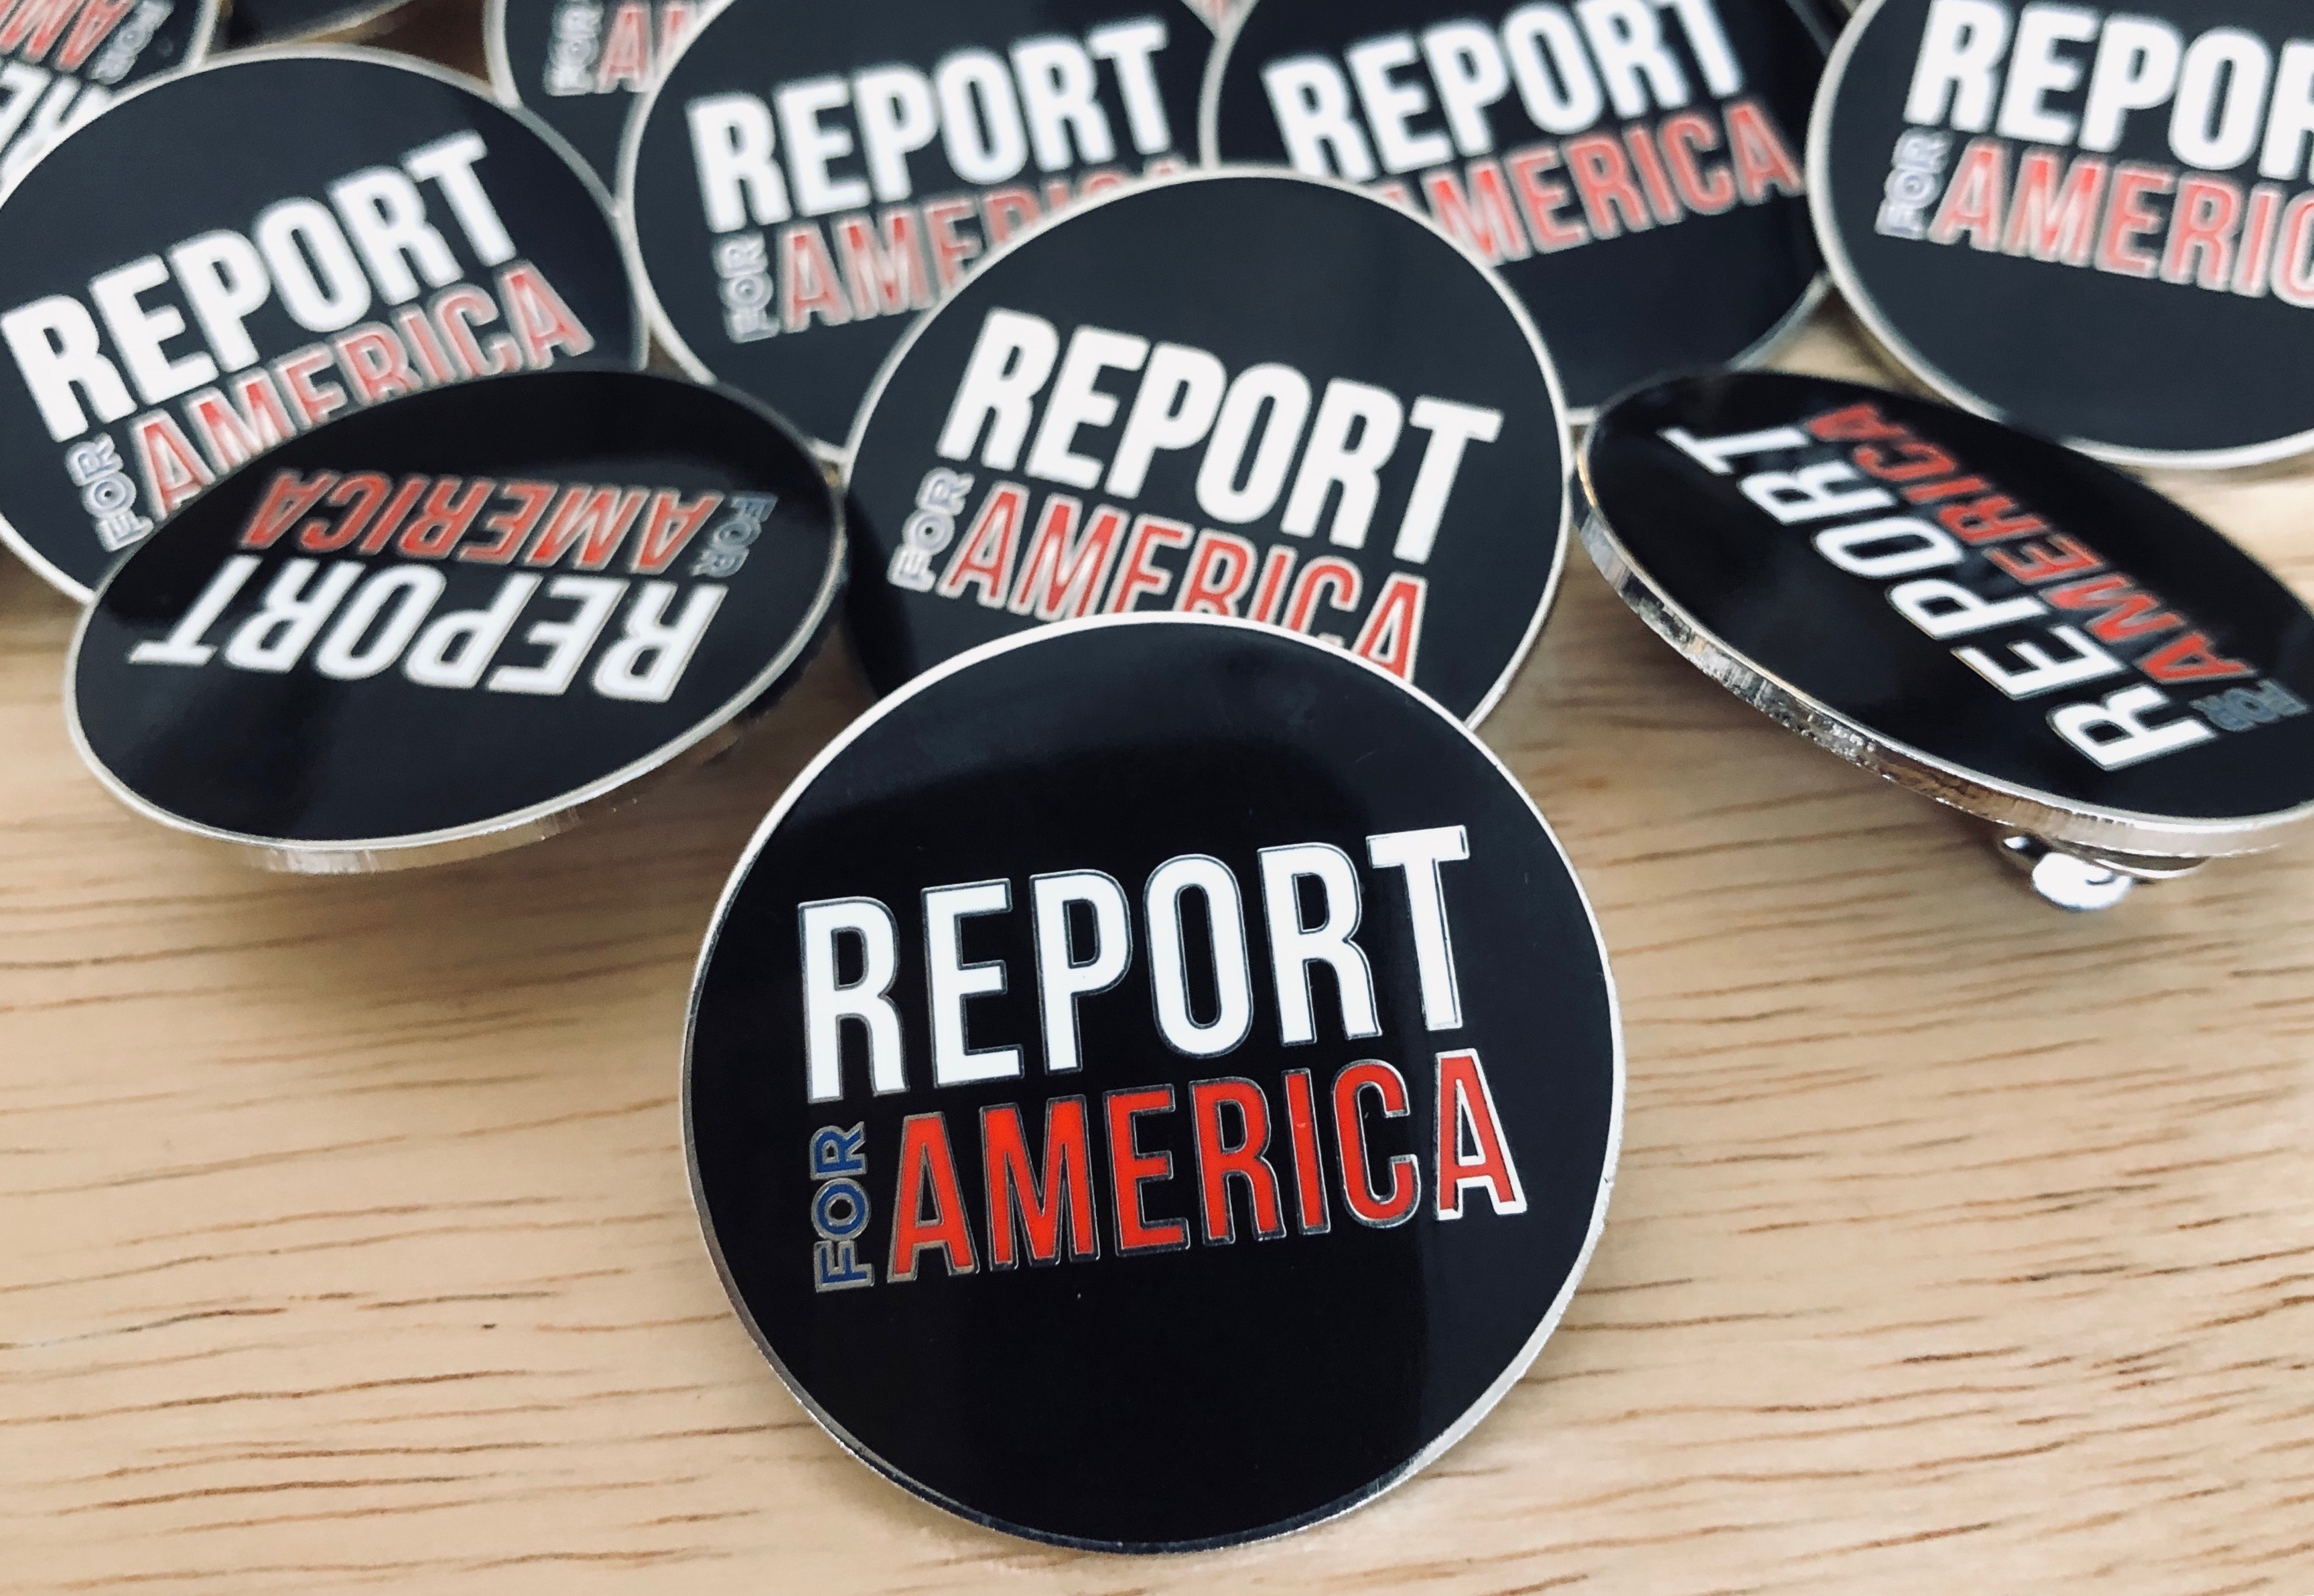 Report for America pins